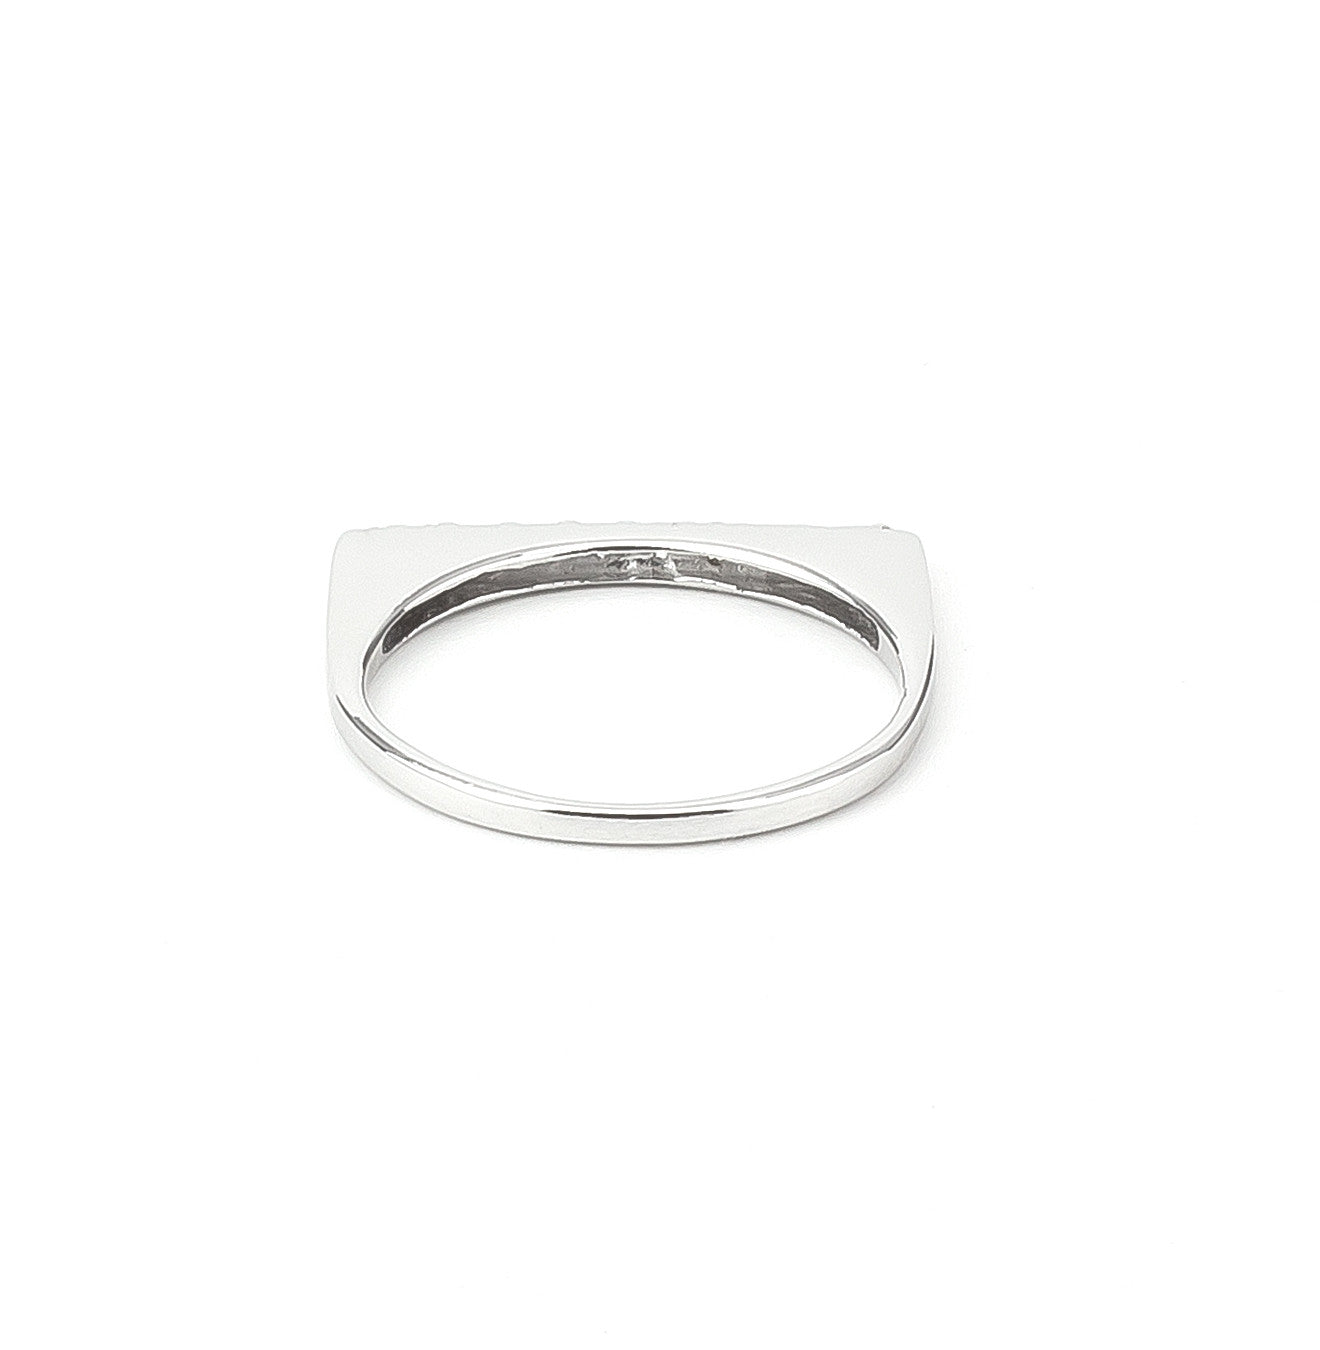 Flat Top Zirconia Bar Stackable Ring in Silver 925